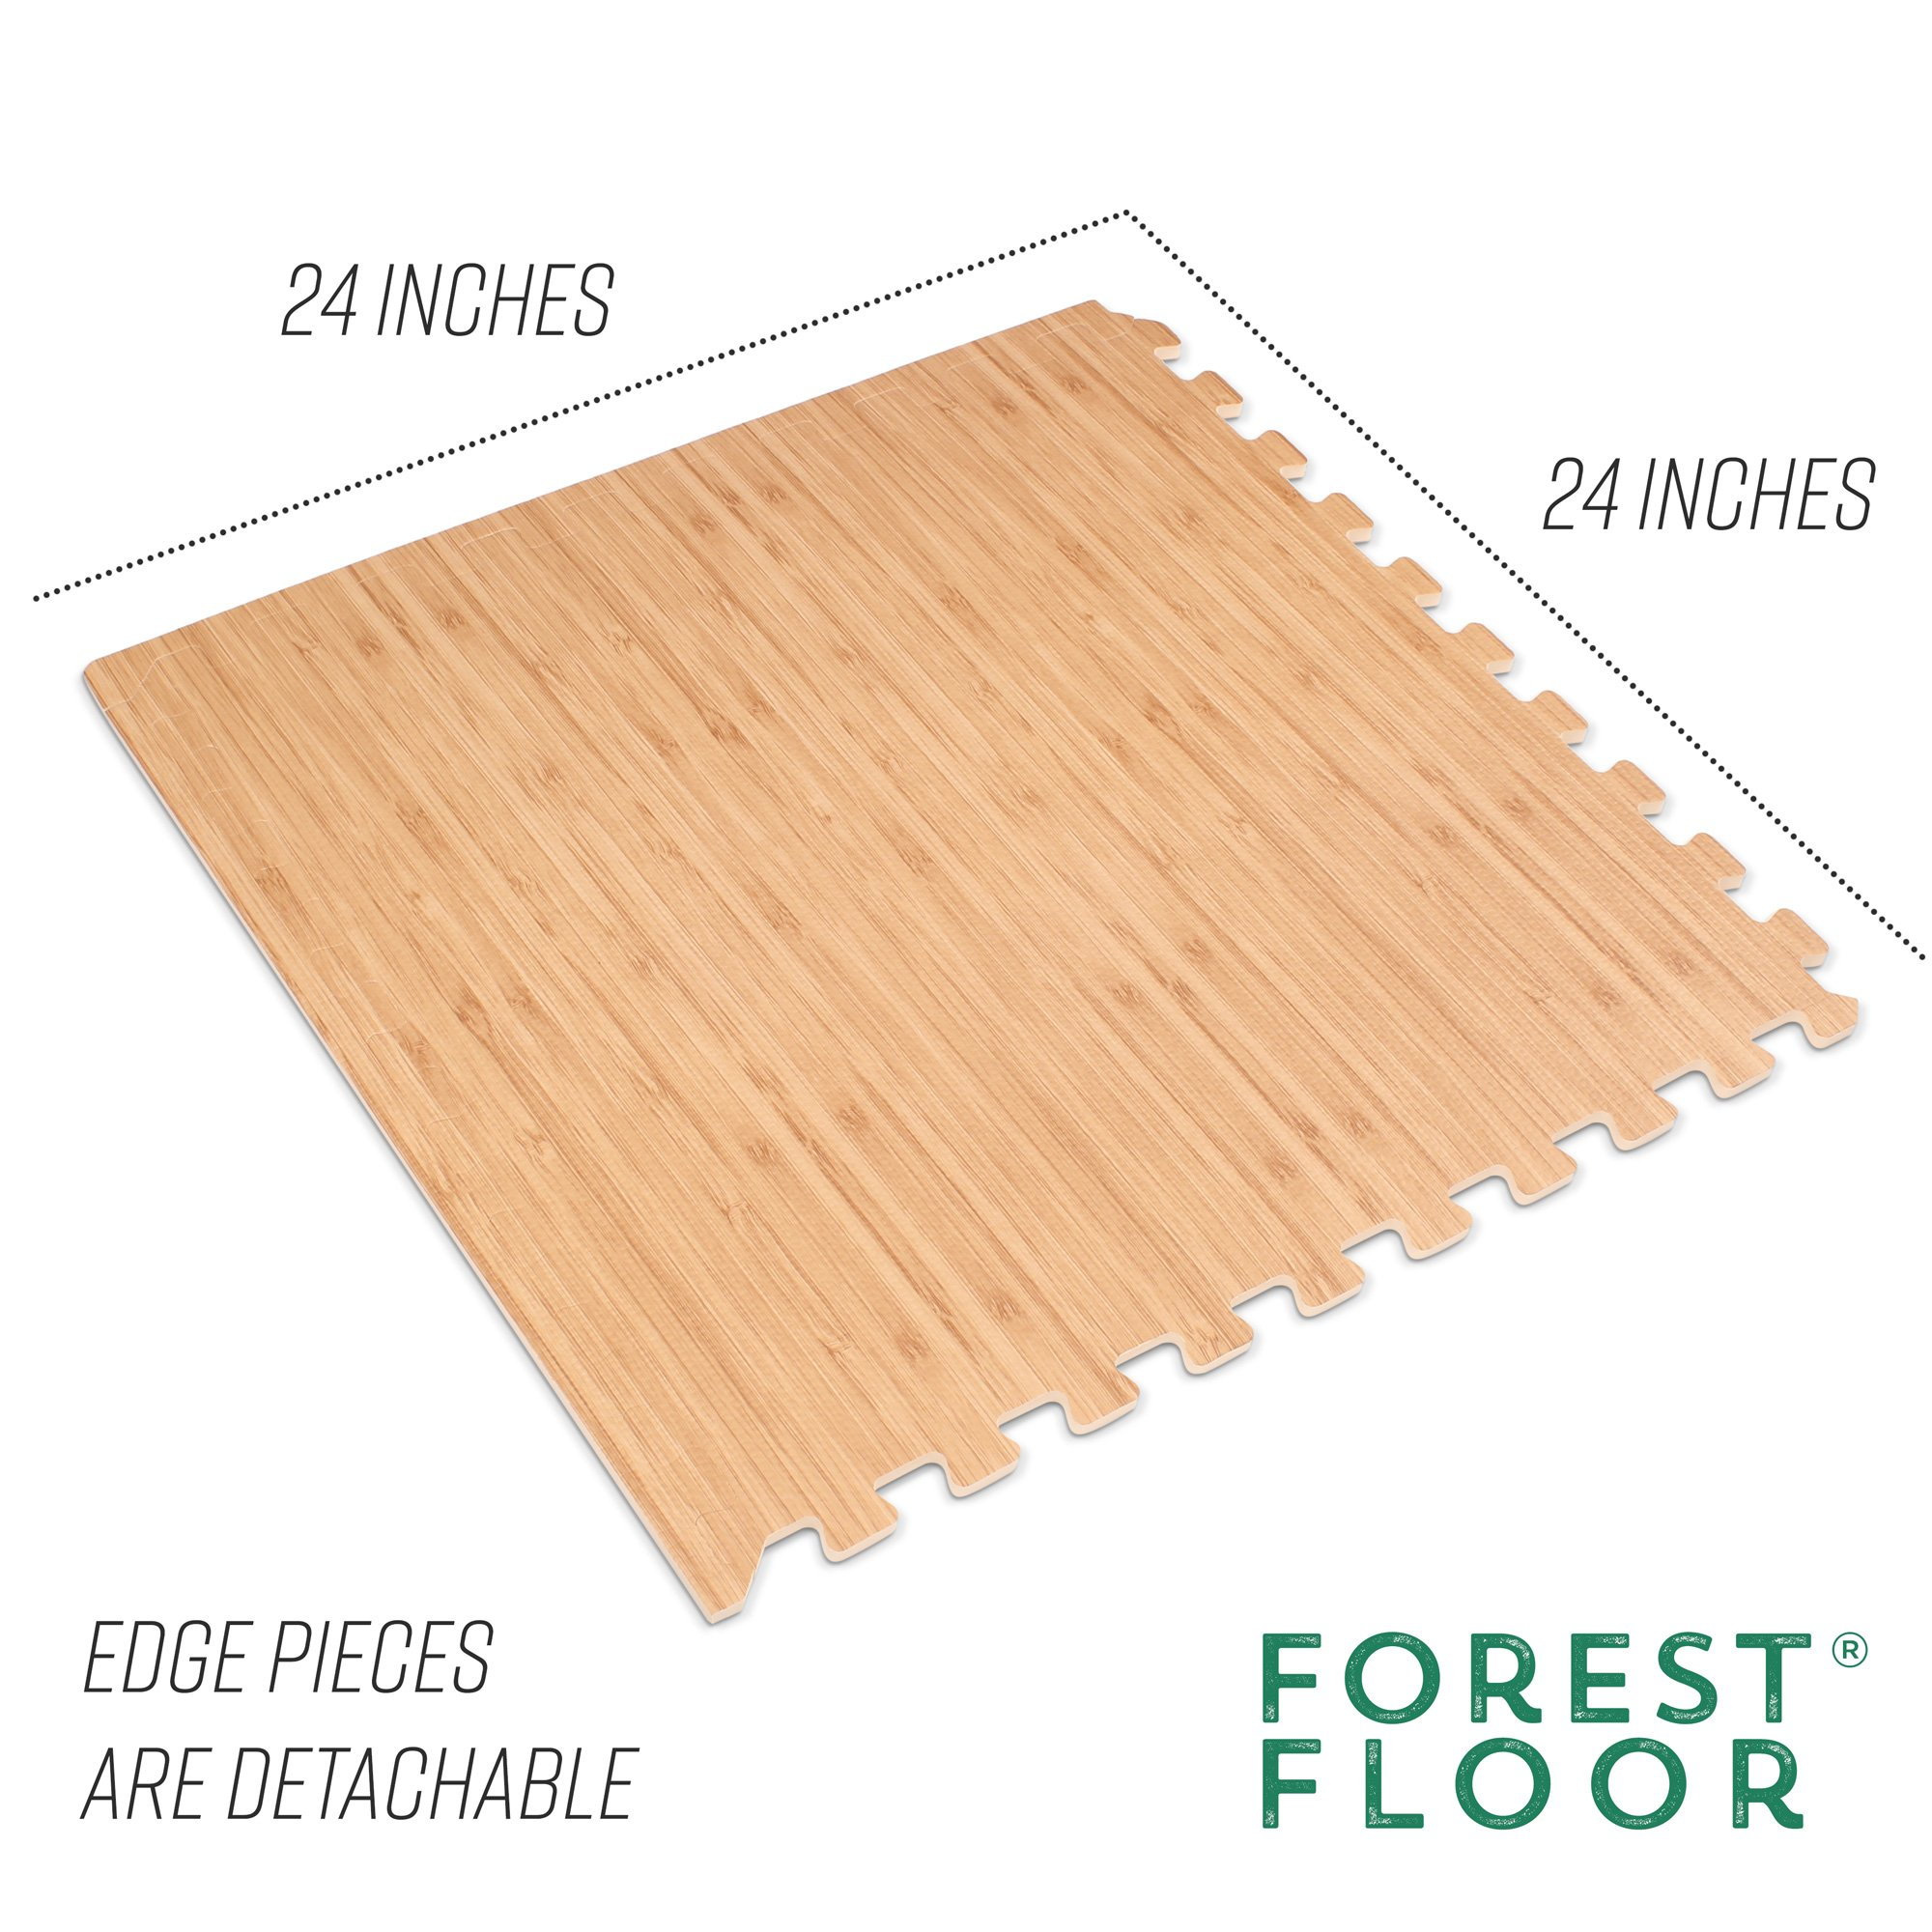 Forest Floor 3/8'' Thick Printed Wood Grain Interlocking Foam Floor Mats, 16 Sq Ft (4 Tiles), Light Bamboo by Forest Floor (Image #4)